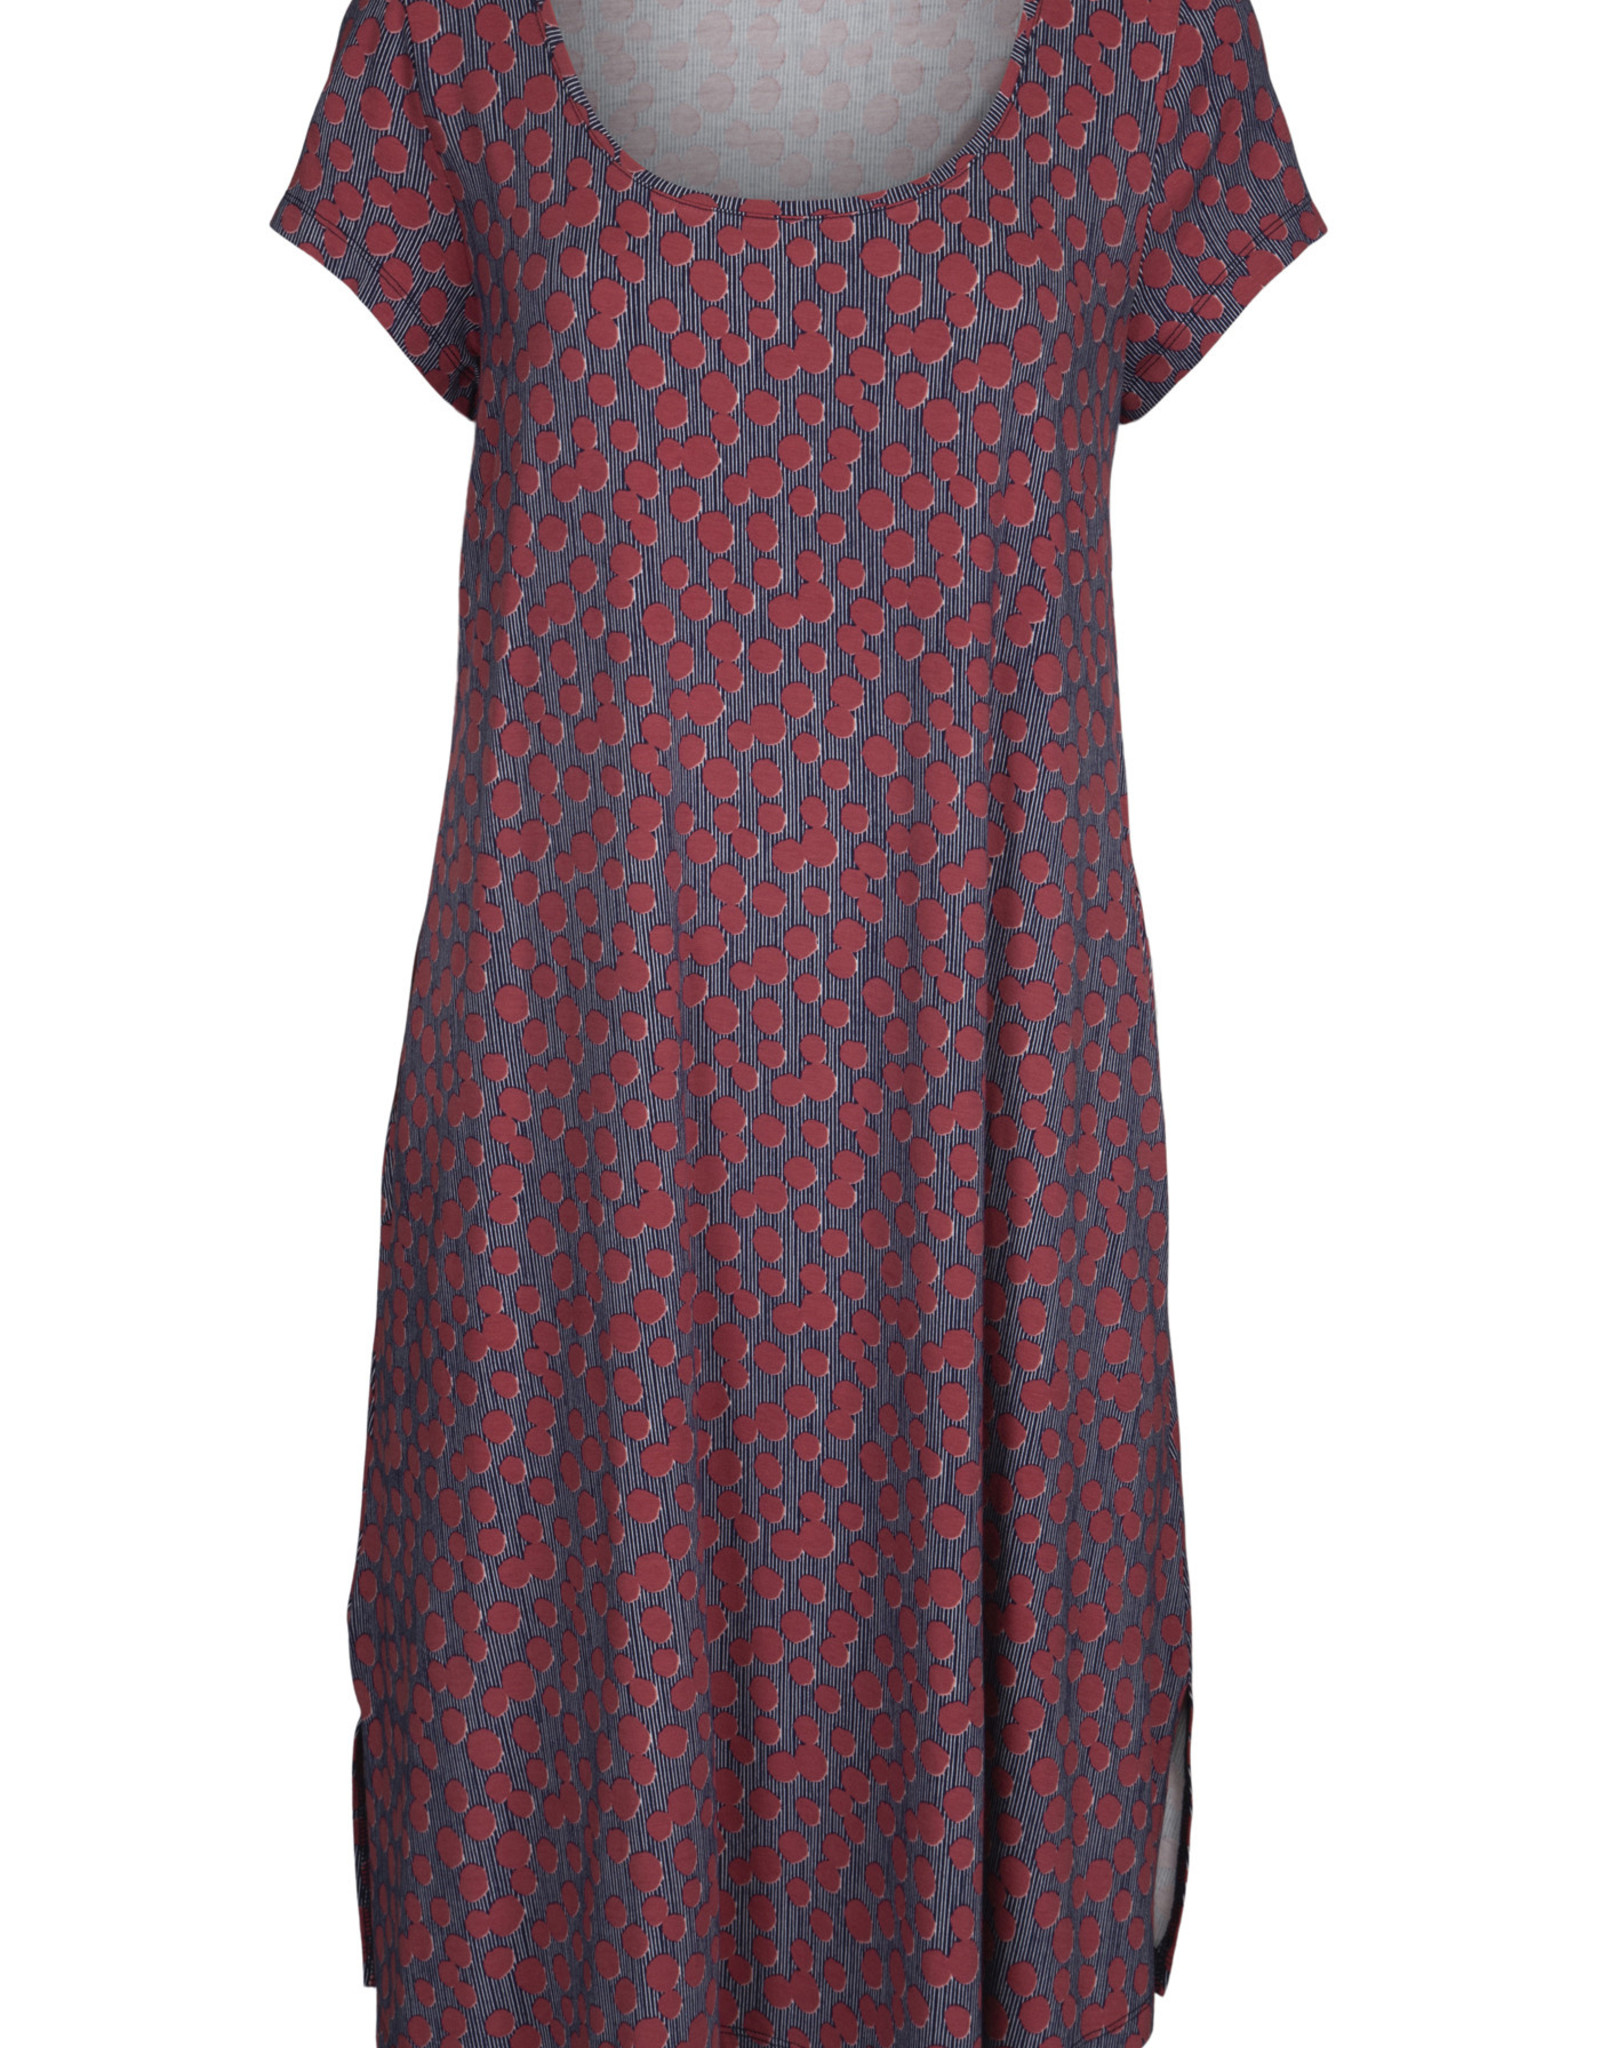 TWO DANES 33772 325 BLOOM PRINT BAMBOO DRESS